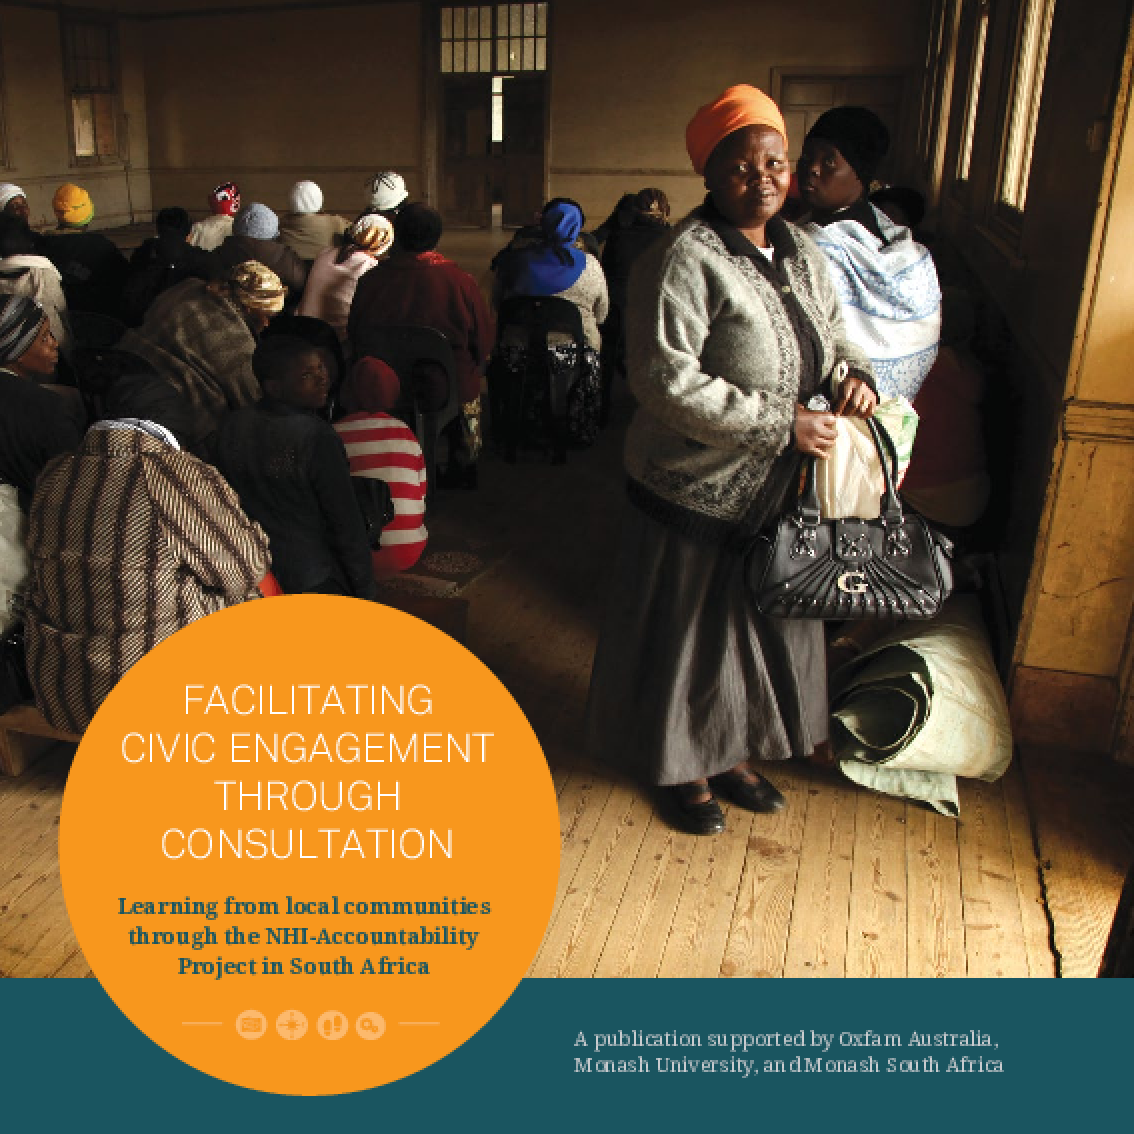 Facilitating Civic Engagement through Consultation: Learning from local communities through the NHI-Accountability Project in South Africa